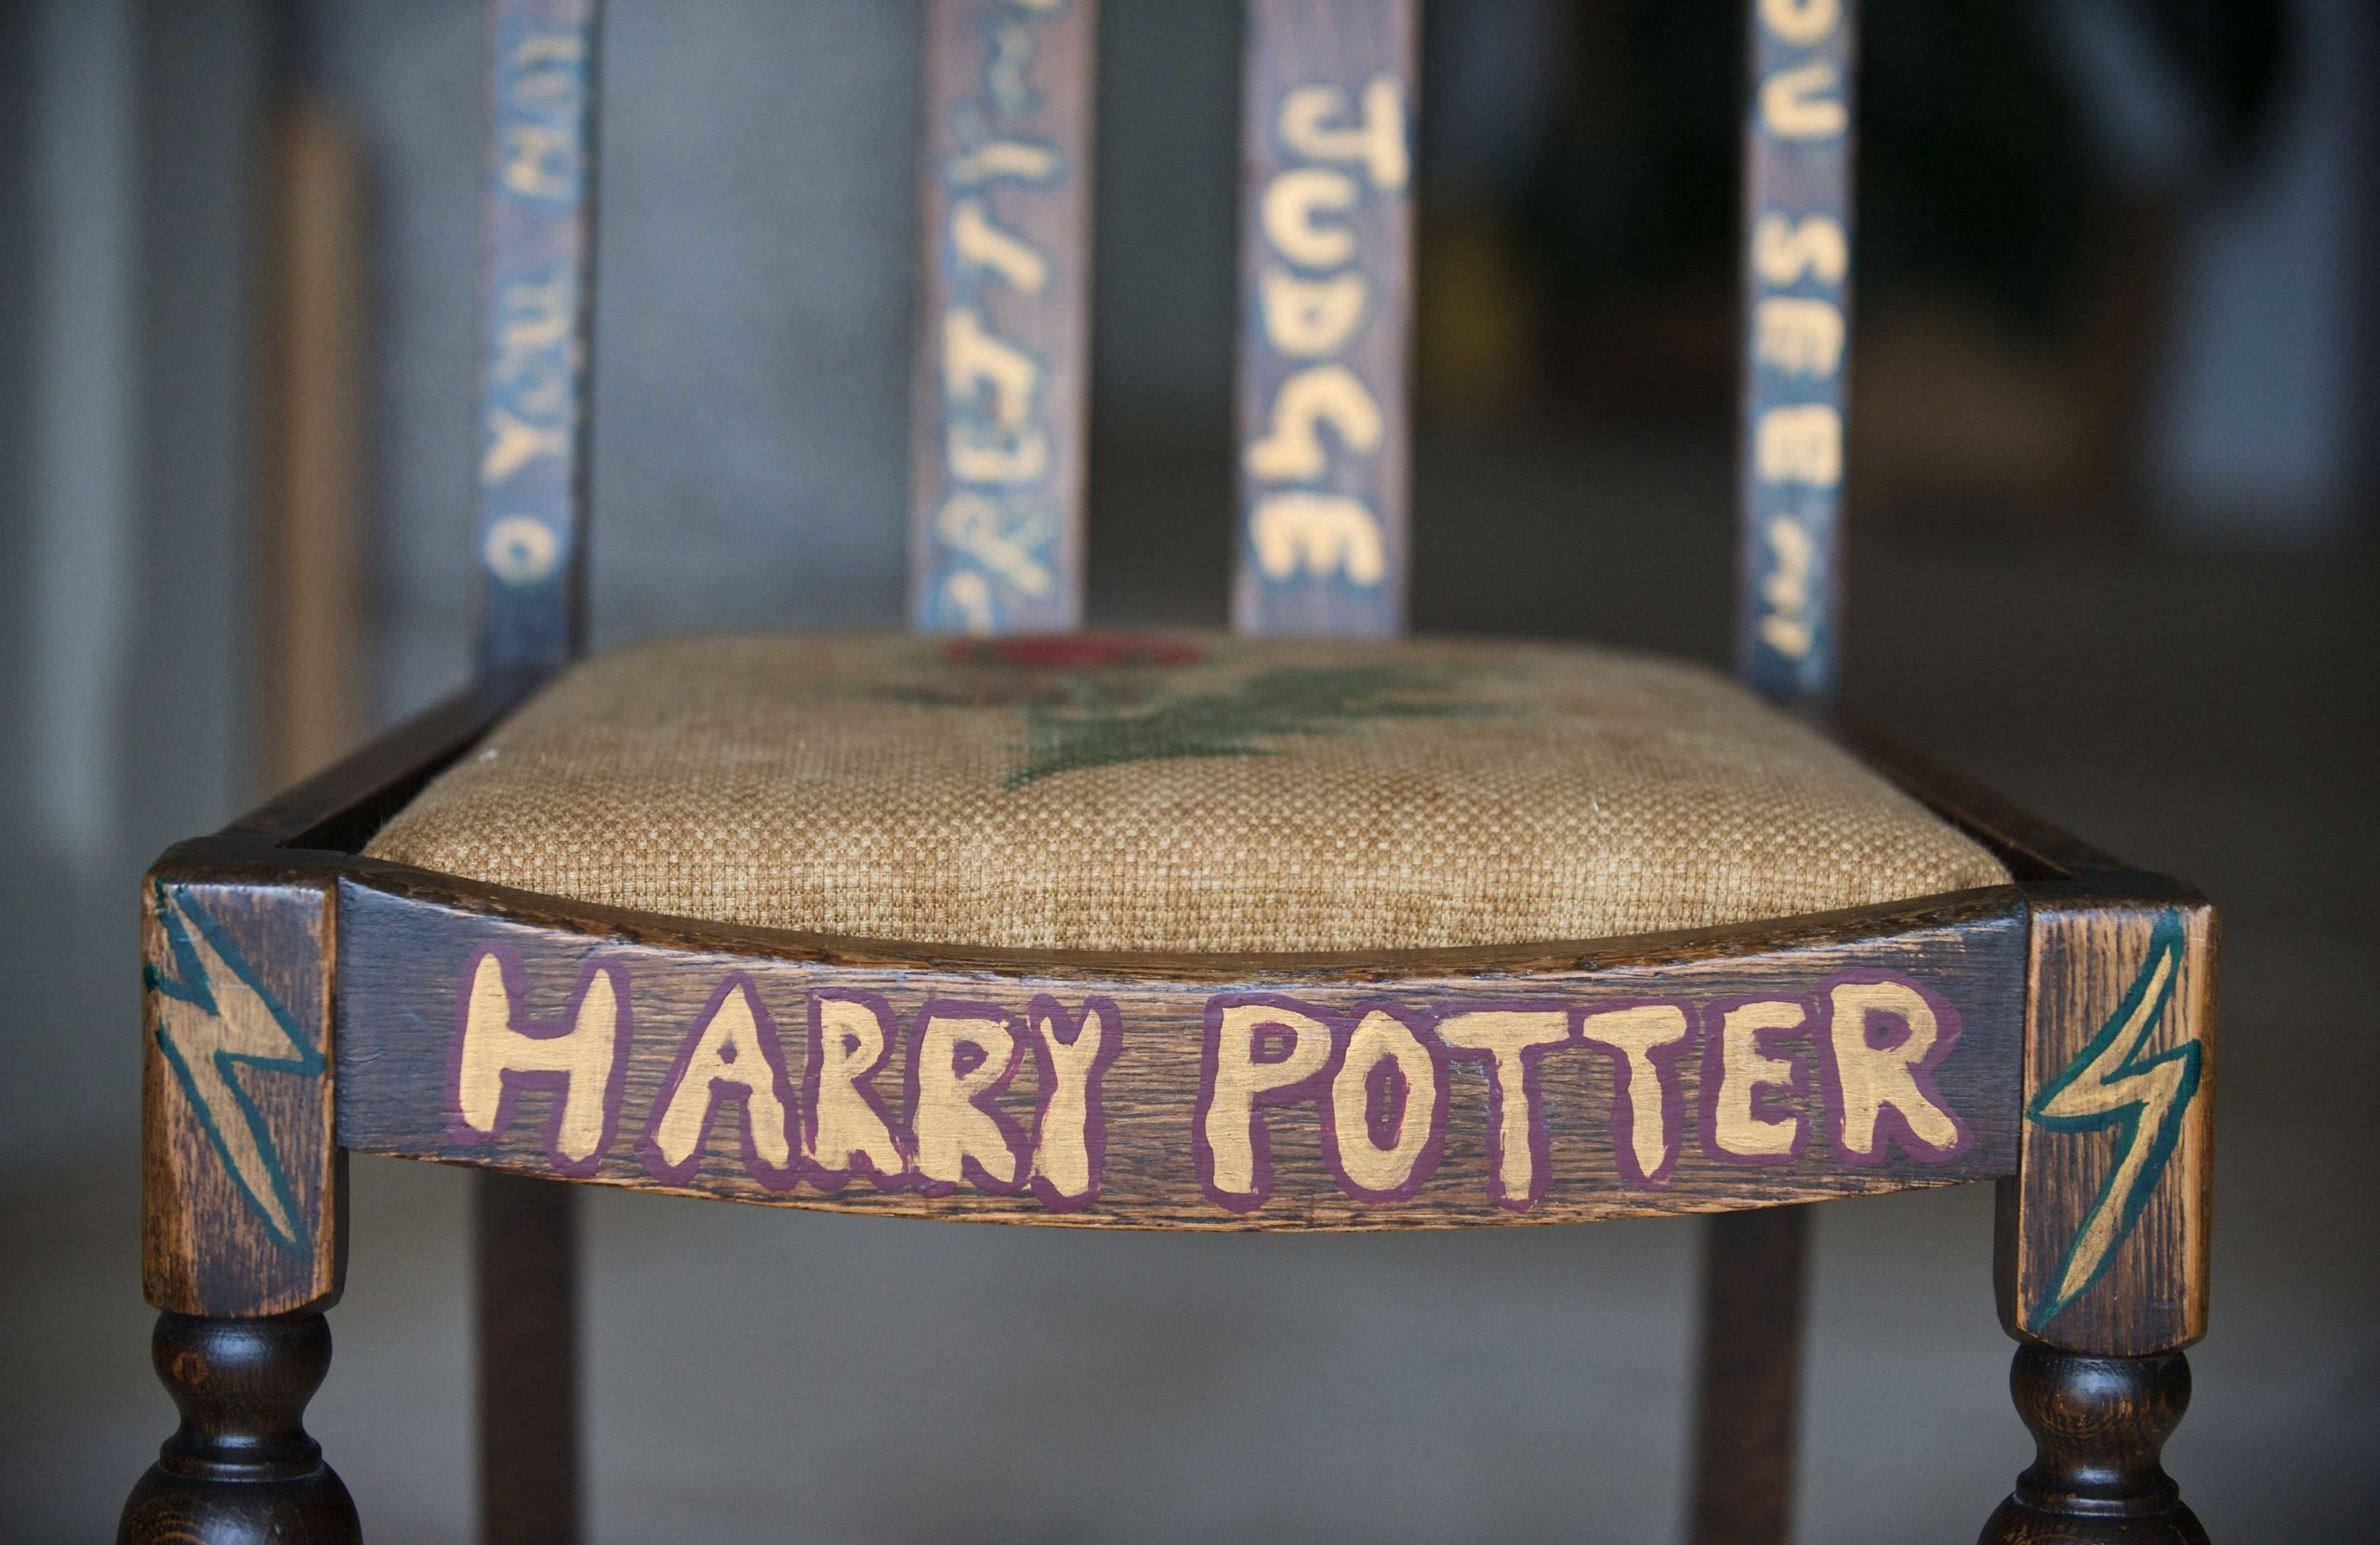 J.K. Rowling's chair